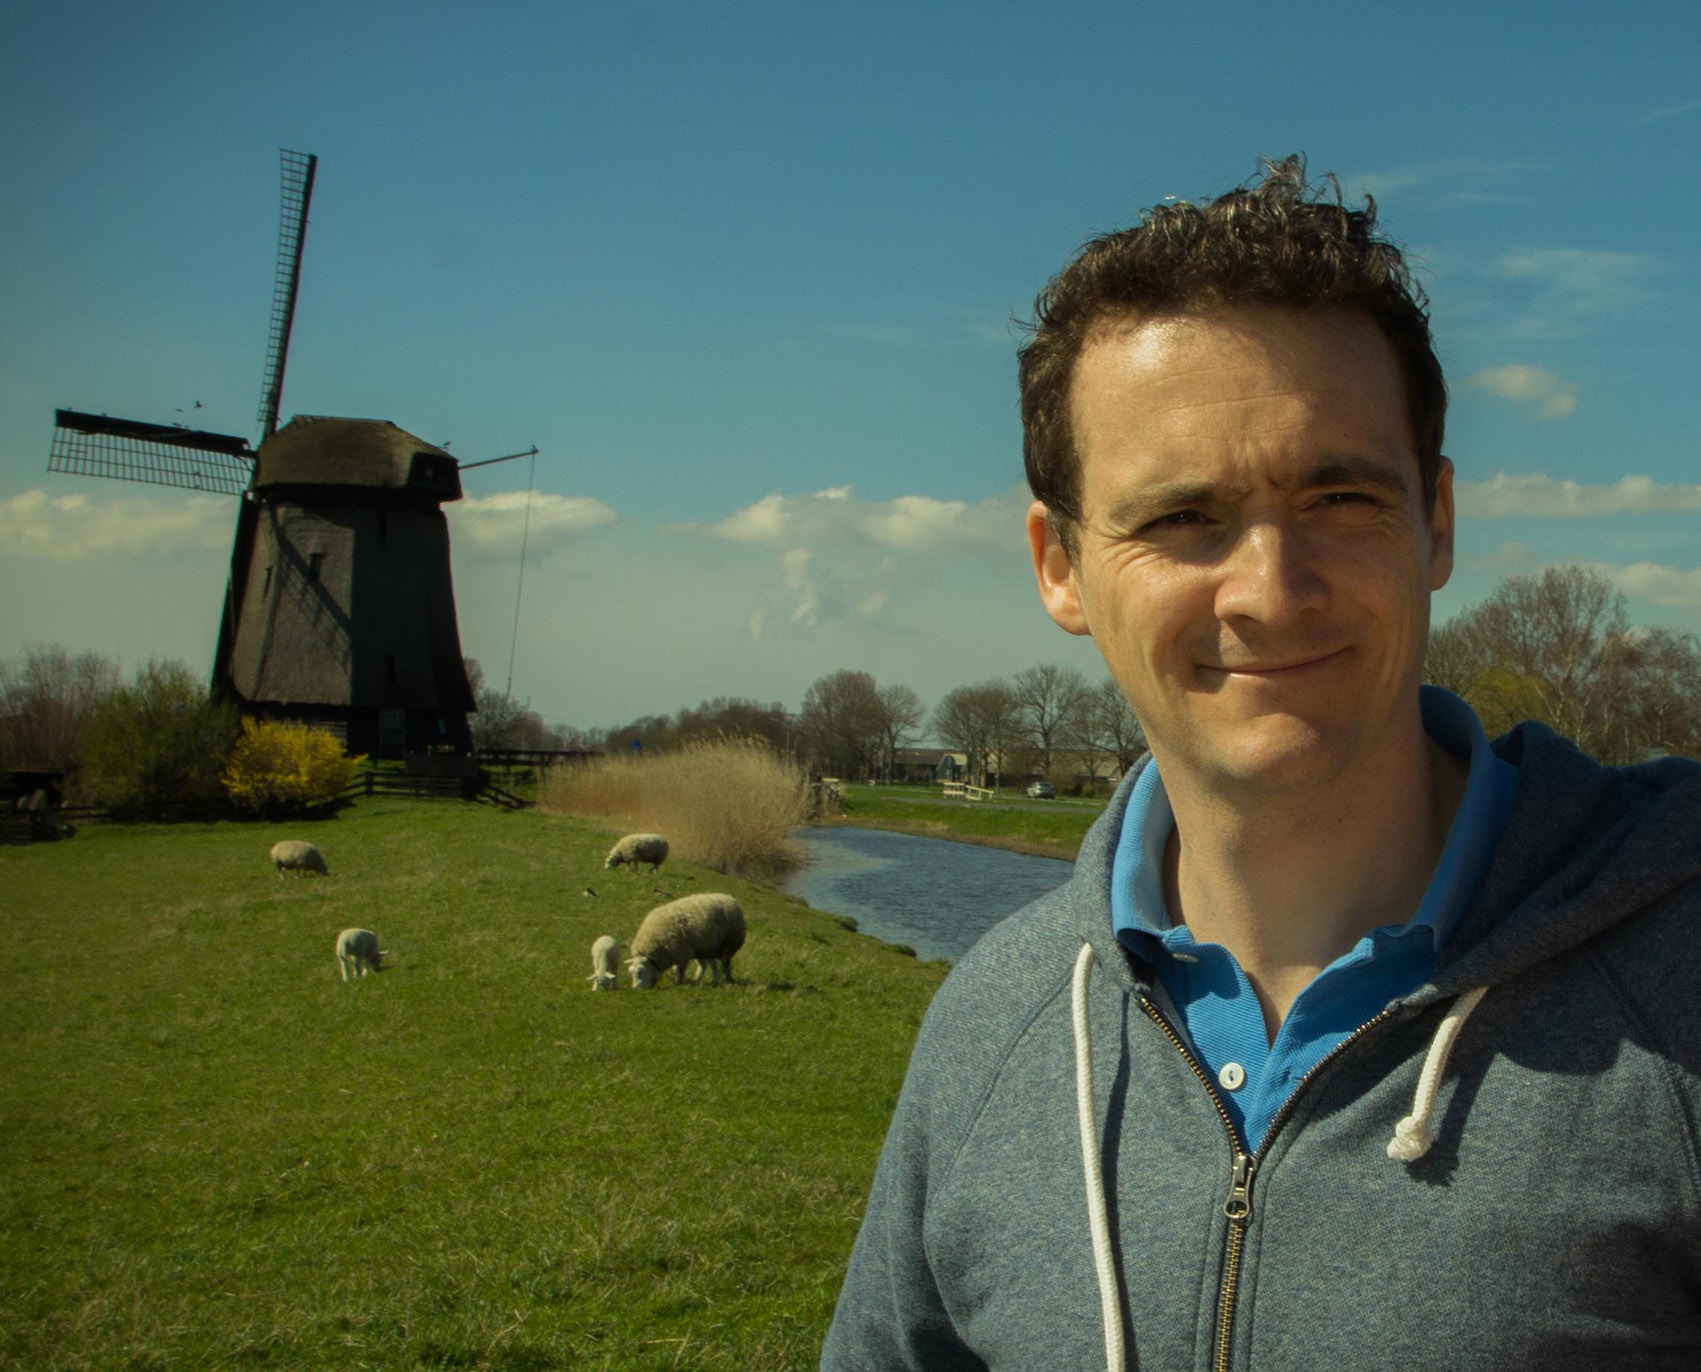 Rory, of Netherlands Culture Tours, at a working windmill from the 1600s.